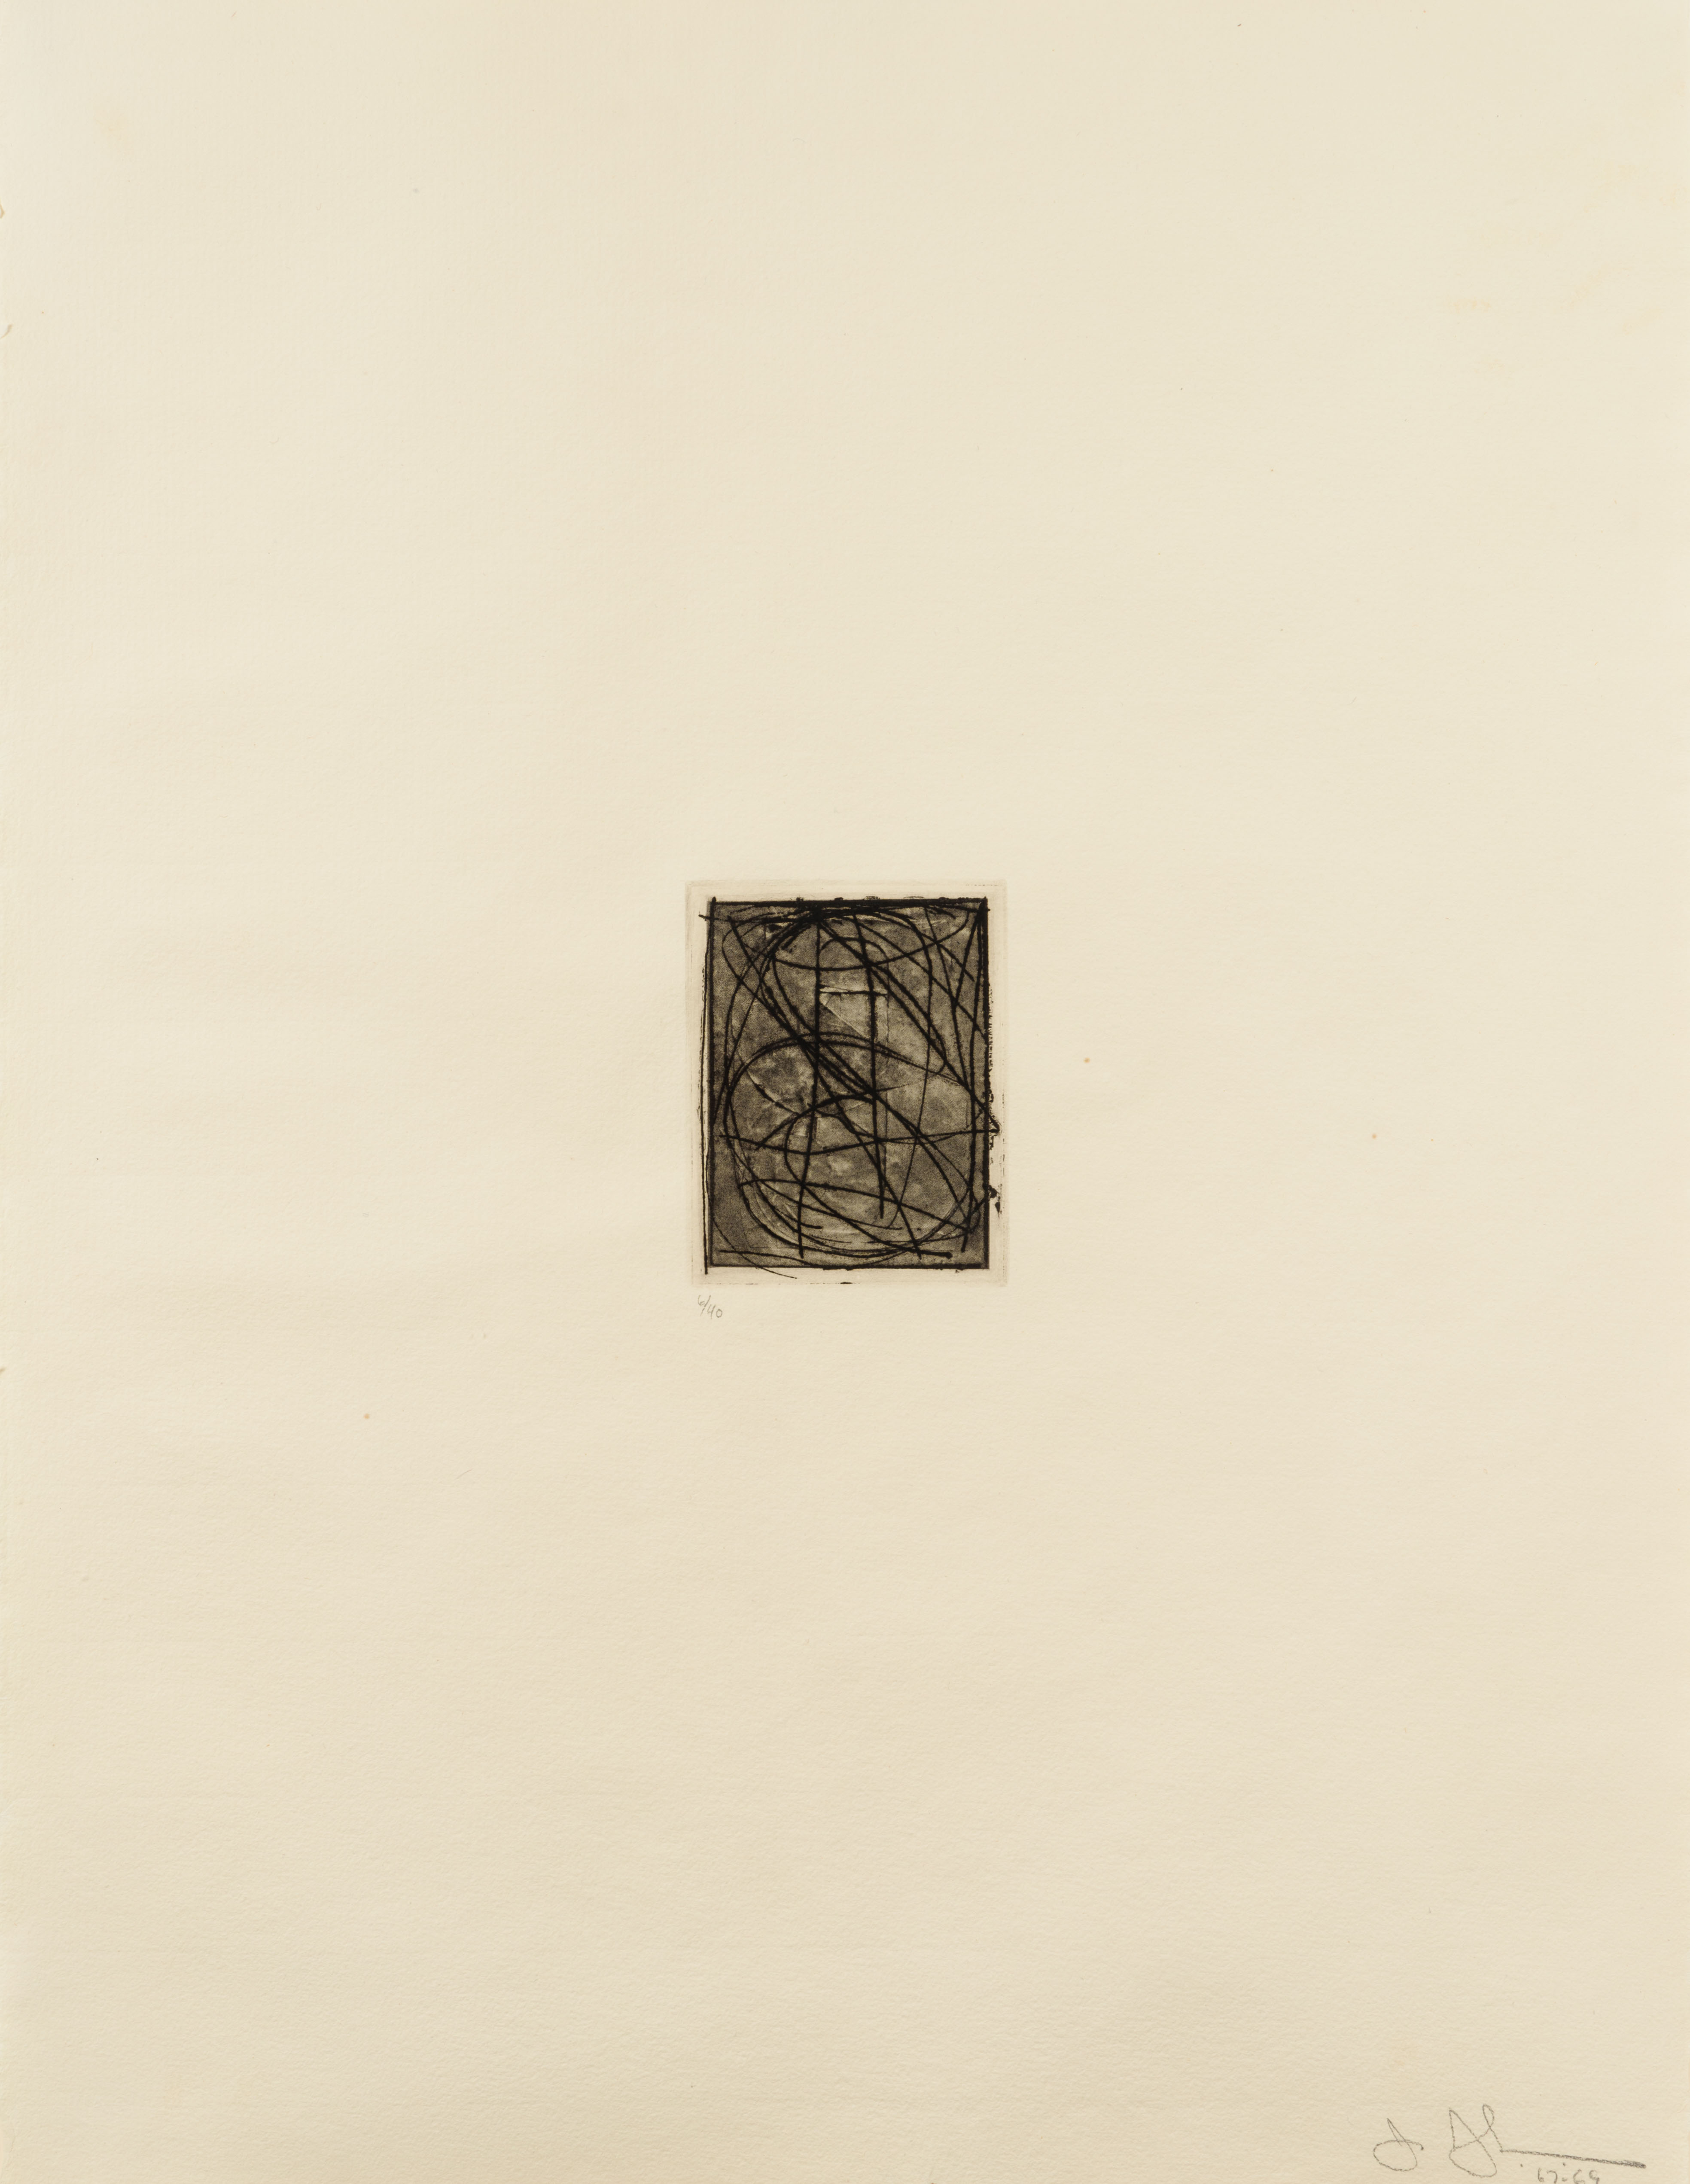 Numbers (Small), 1st Etchings, 2nd State